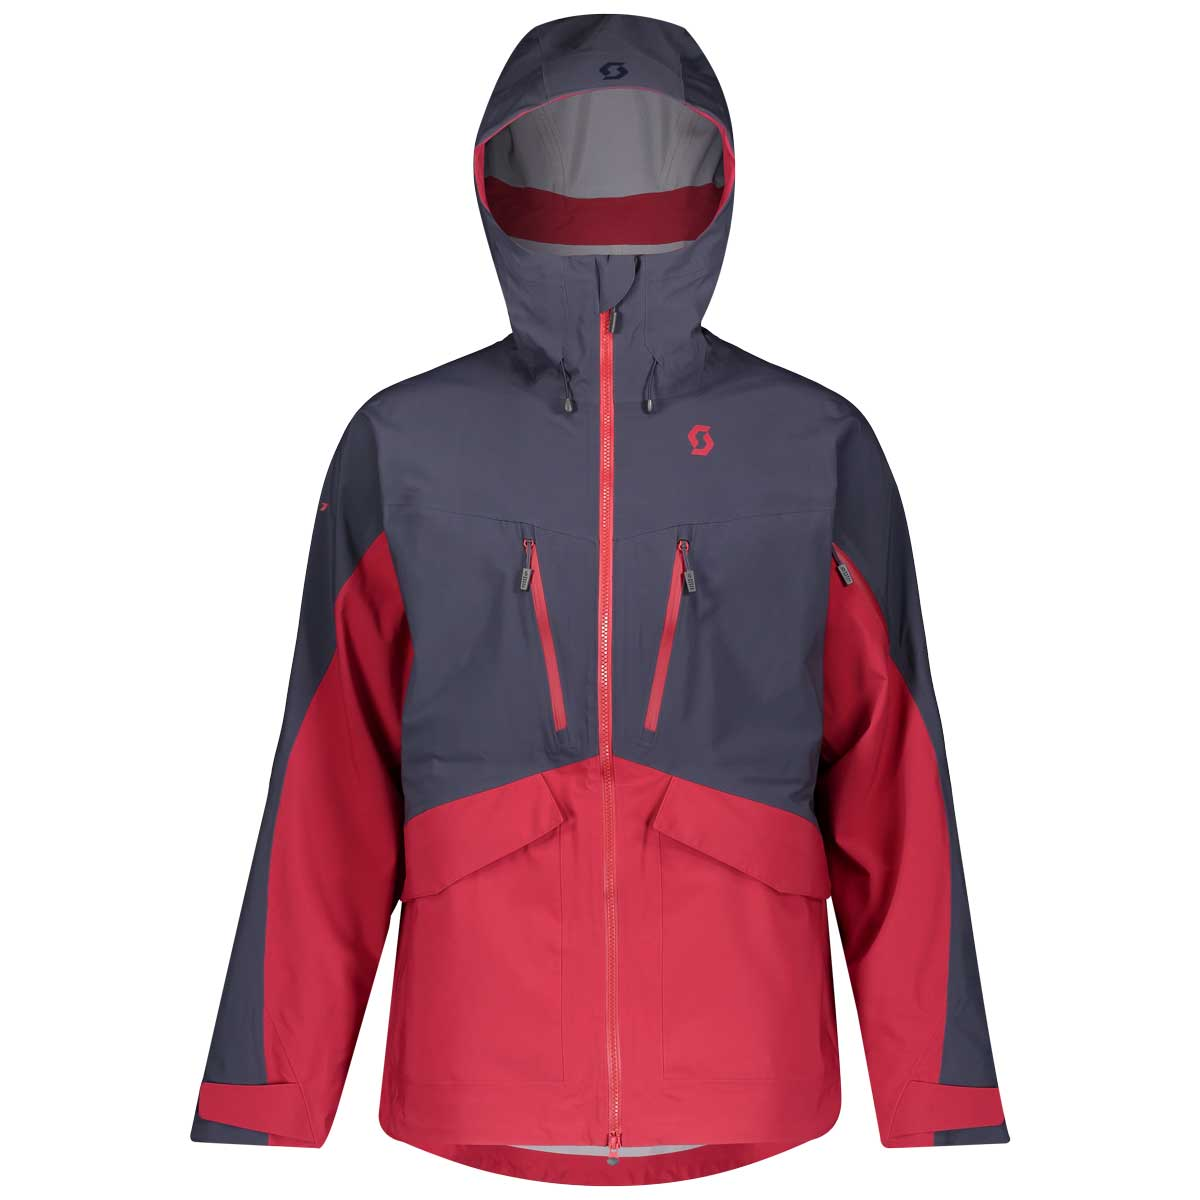 scott men's vertic drx jacket in Blue Nights and Wine Red.